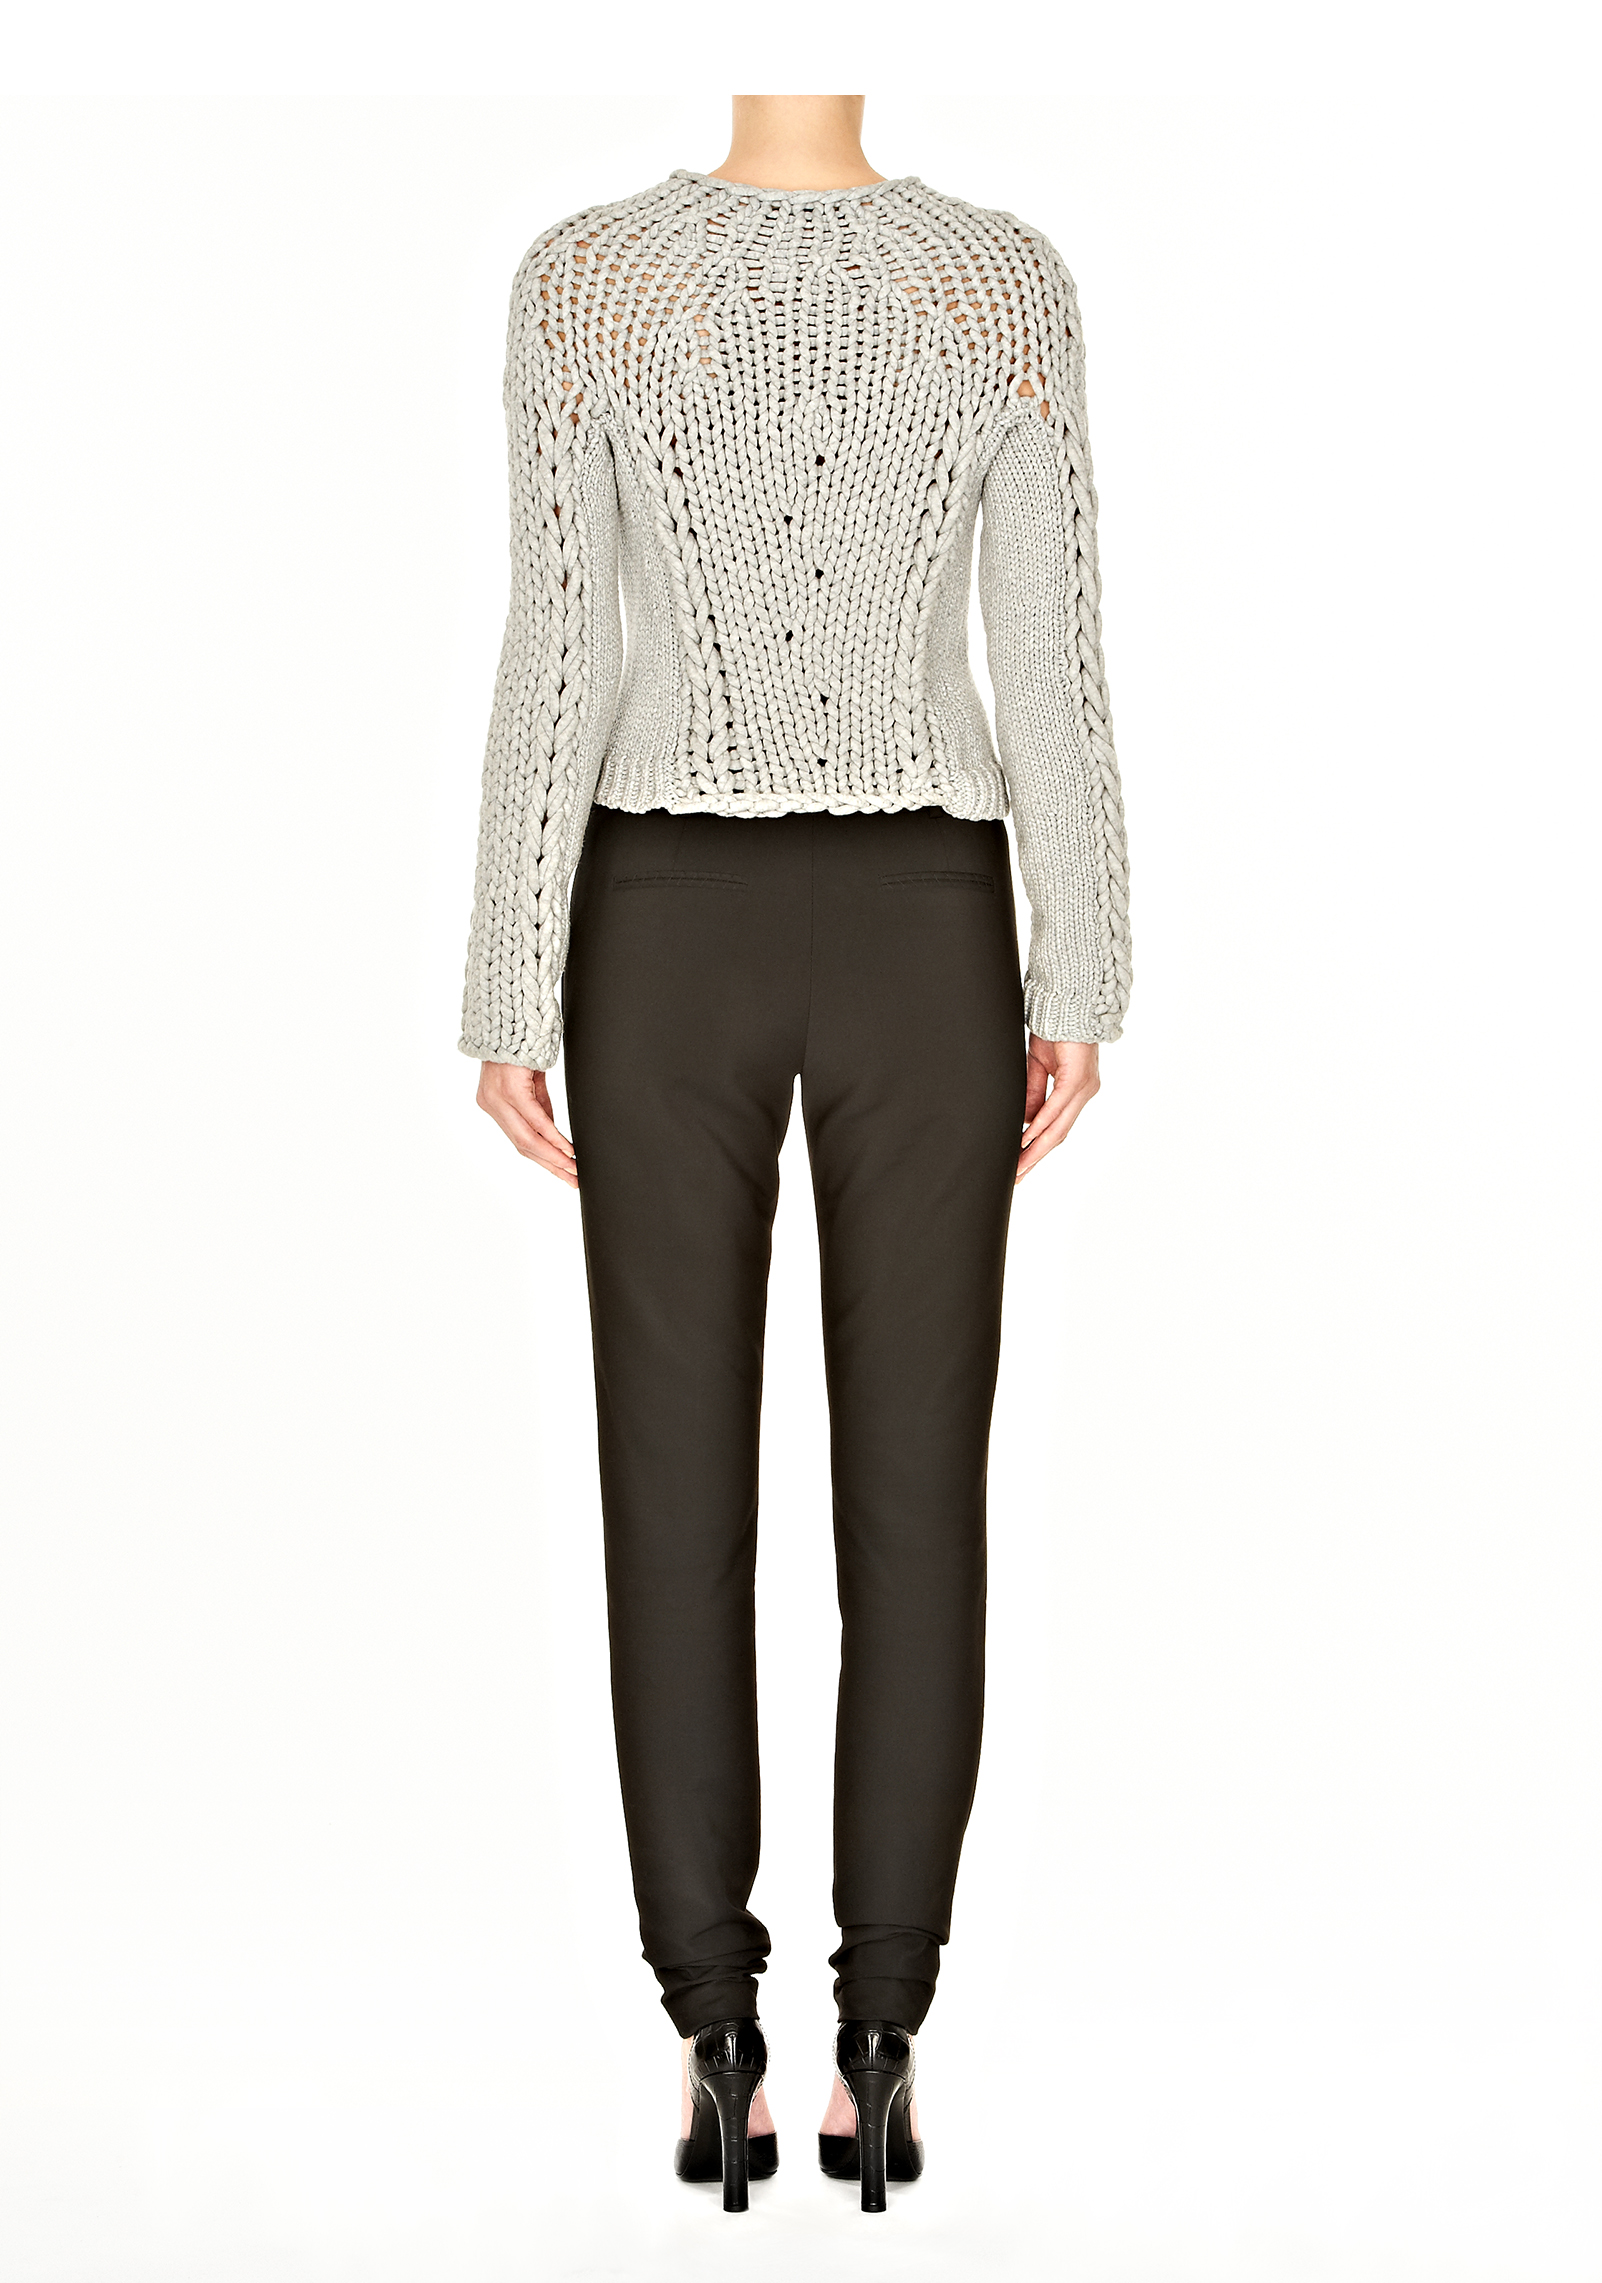 Lyst Alexander Wang Skinny Boy Pant With Leather Belt In